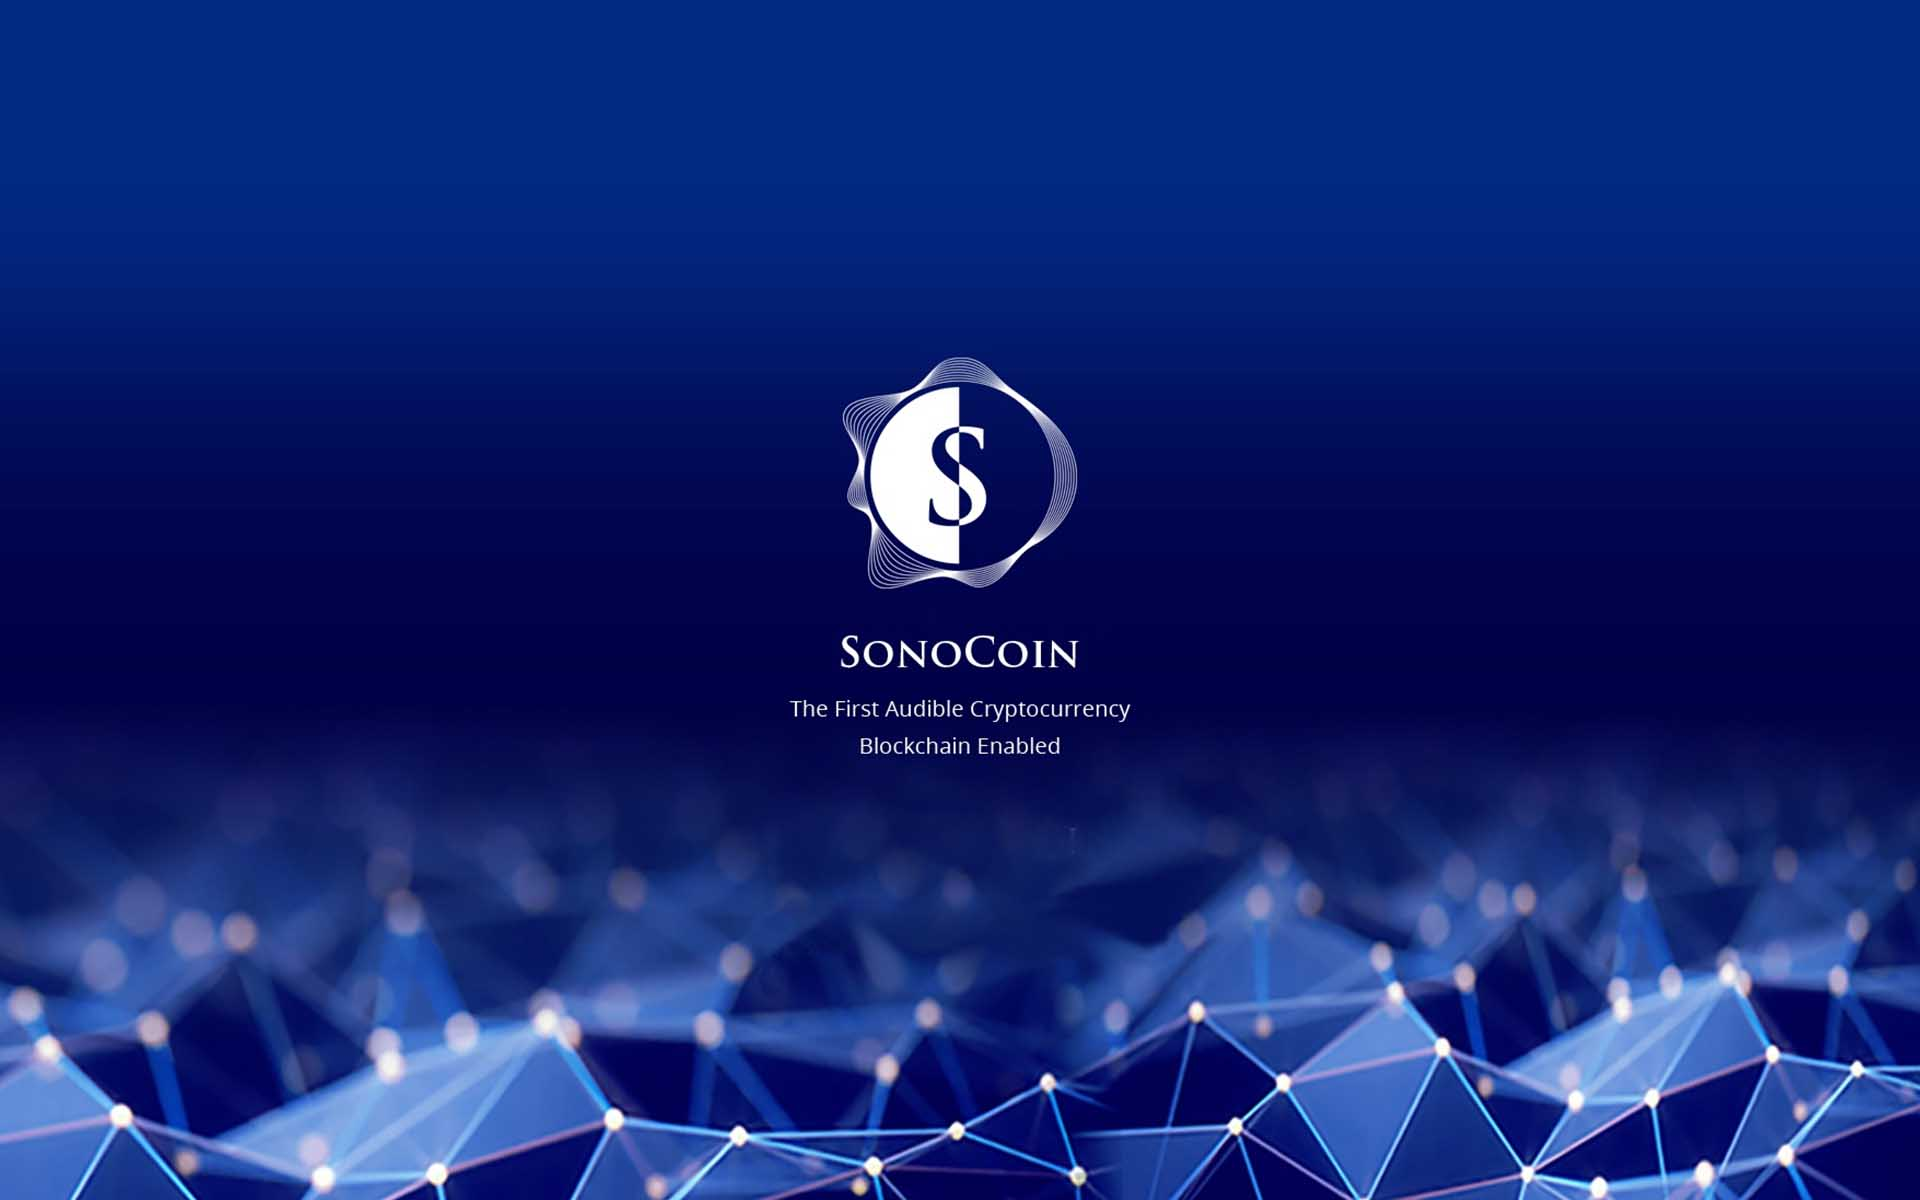 SonoCoin Rocks The Cryptocurrency World With ICO Launch & Release Of The First Ever Audible Blockchain Enabled Cryptocurrency